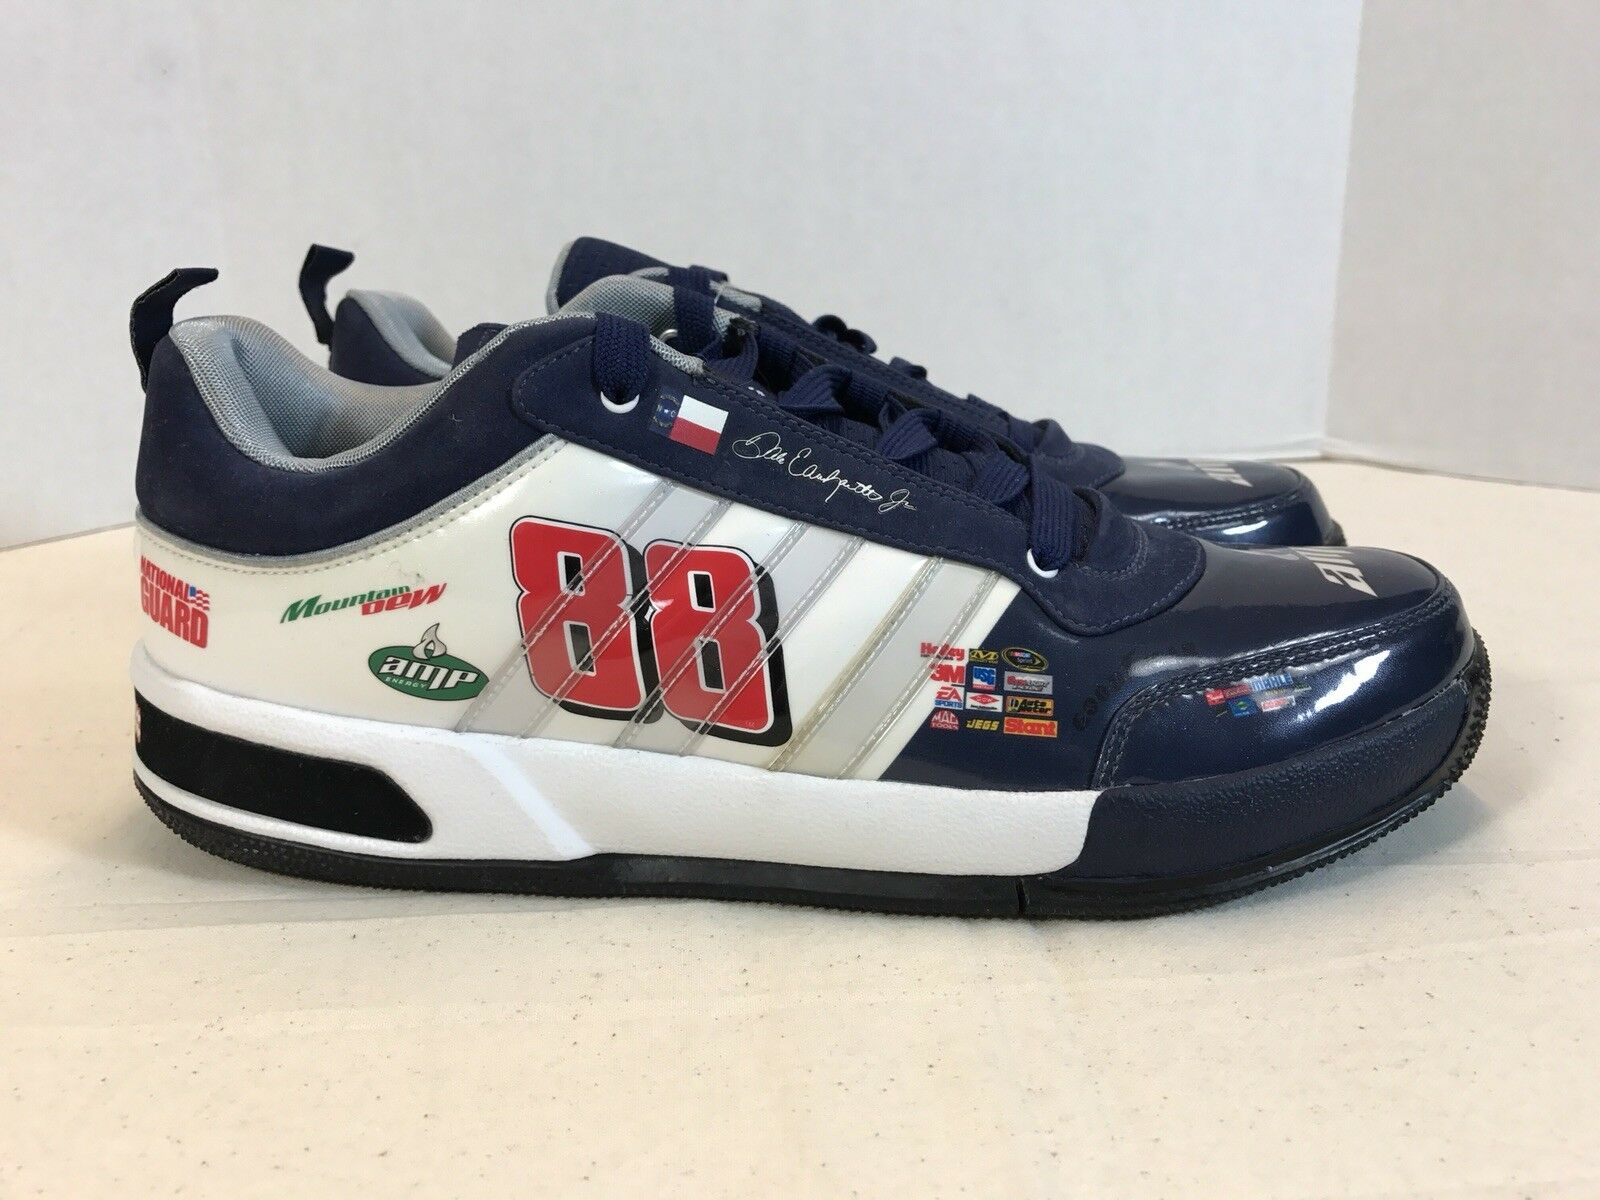 1-of-1 muestra Adidas Dale Earnhardt Jr. Zapatos   9   DS   Superstar Boost